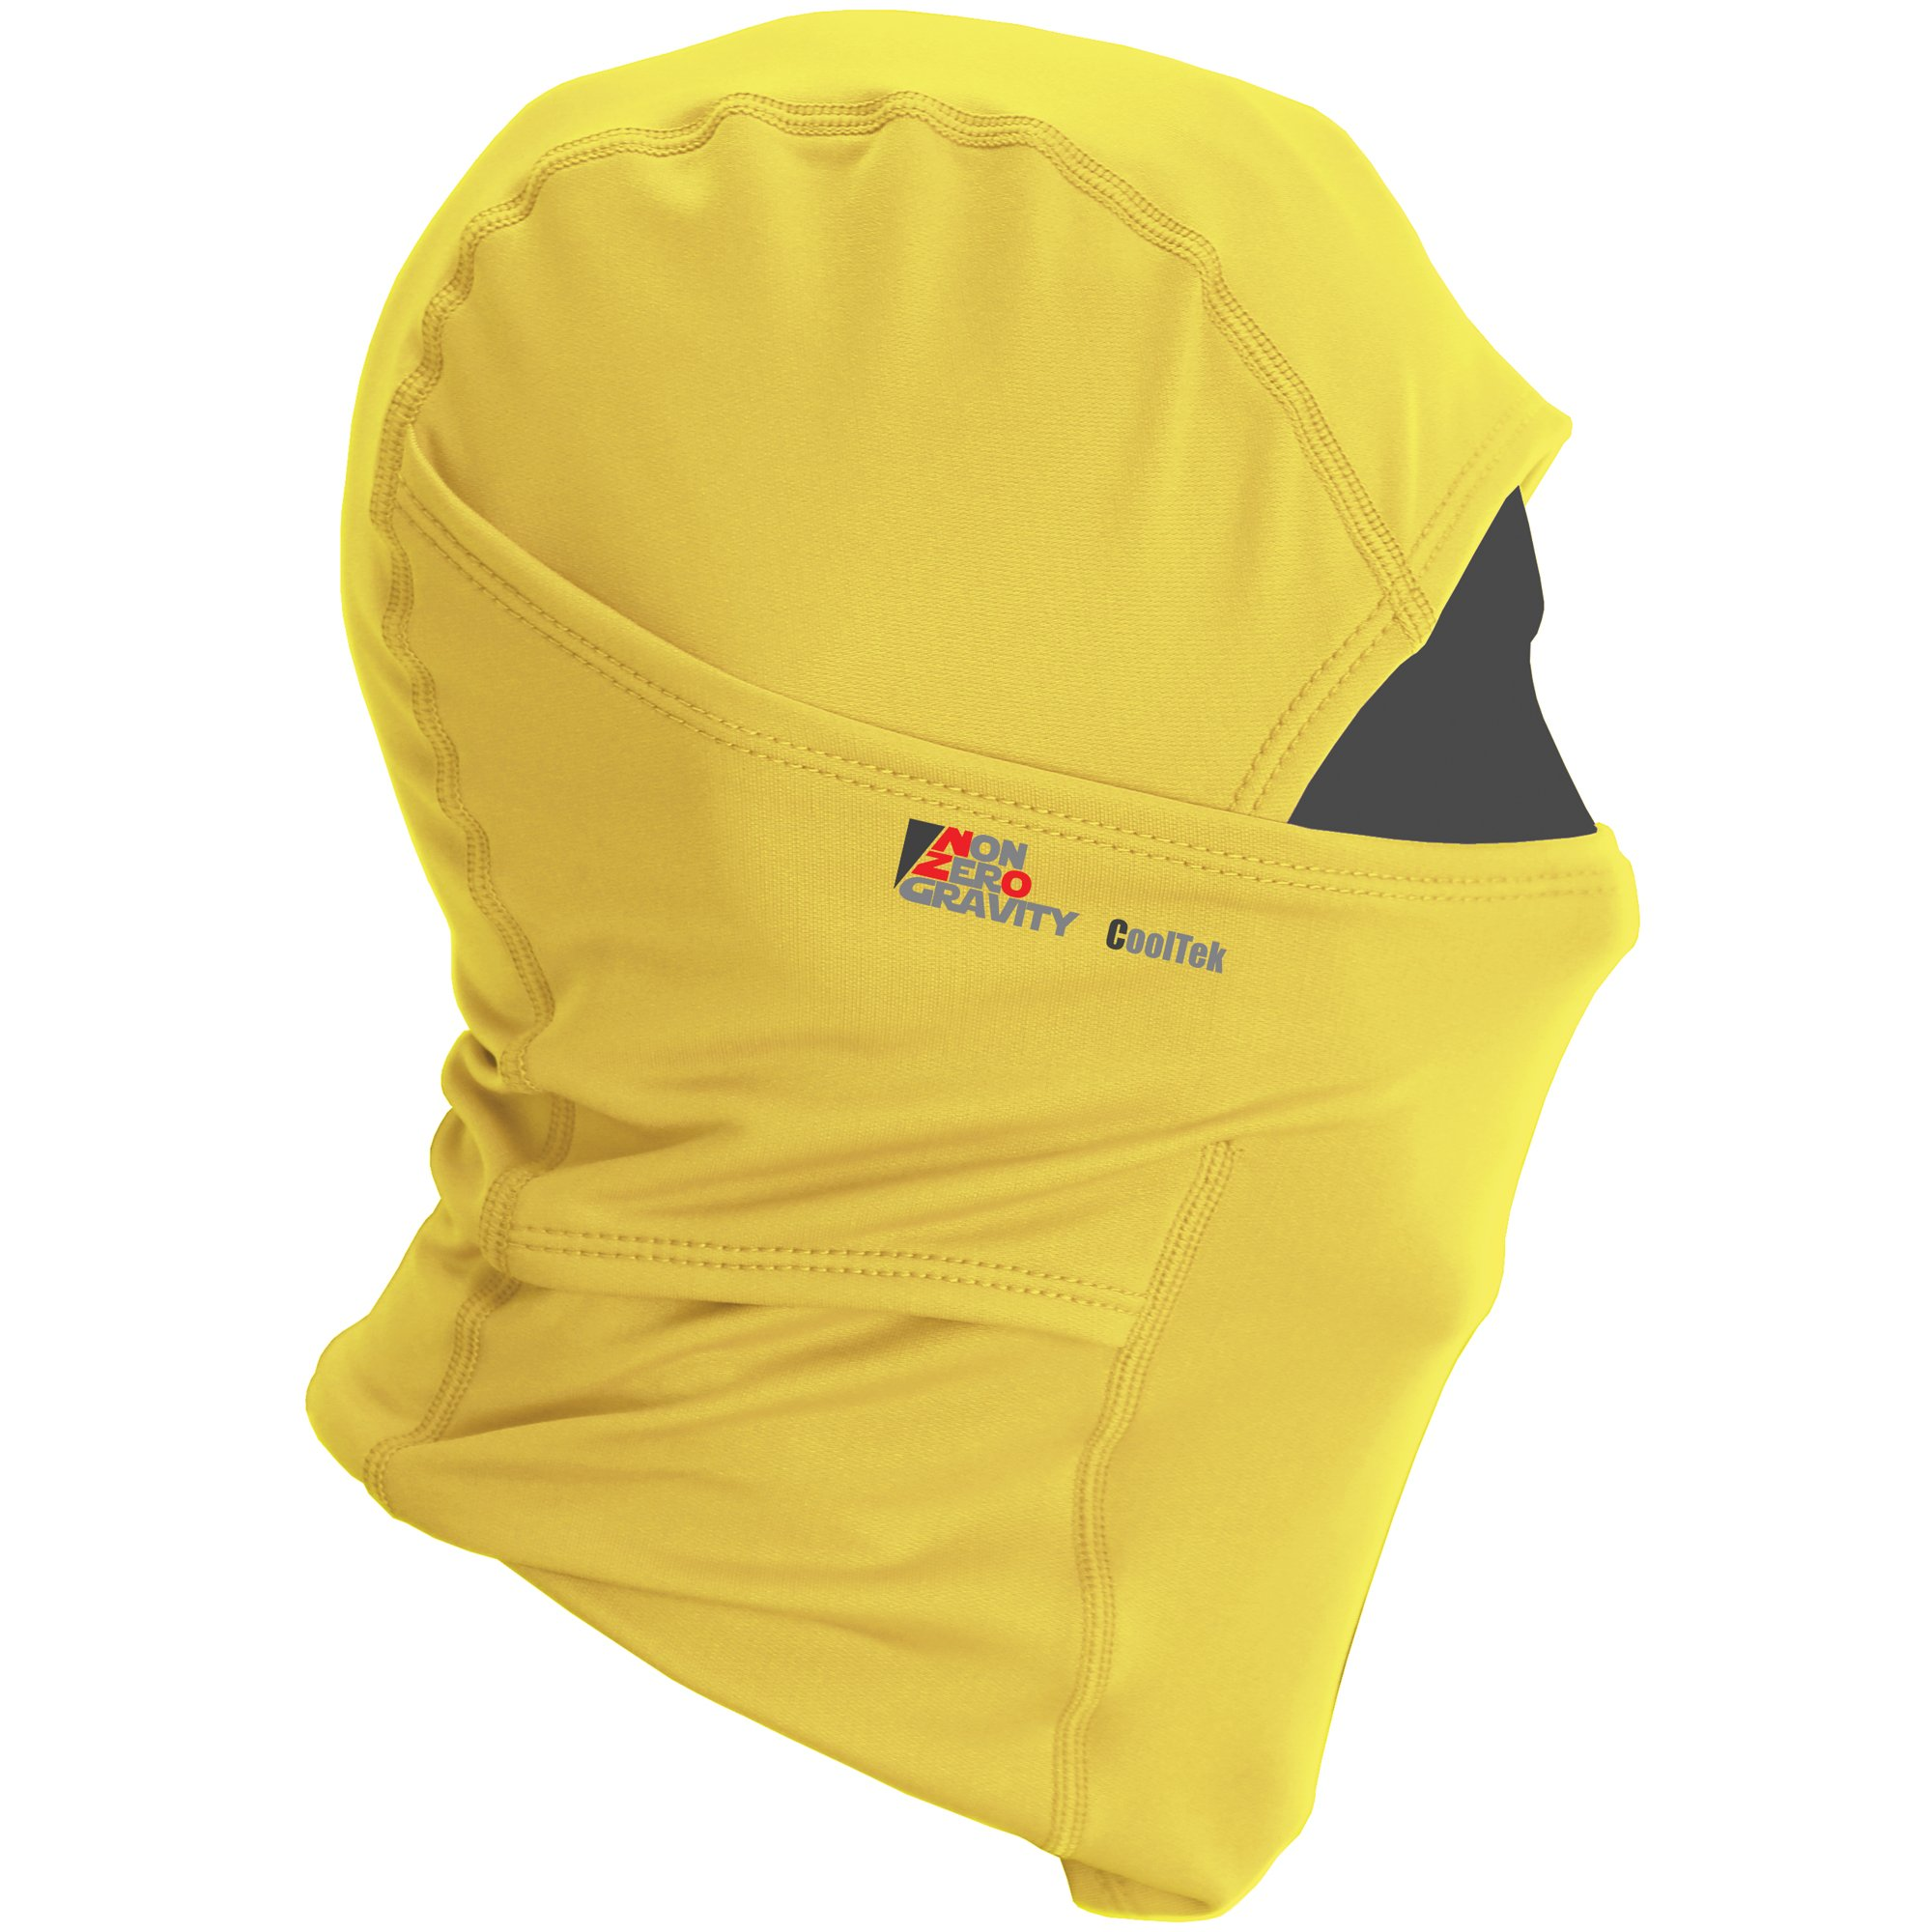 NonZero Gravity Cooling Hood | Tactical Hoodie, Head Wrap And Neck Scarf For Cycling, Biking And Sports (Tactical, Yellow)